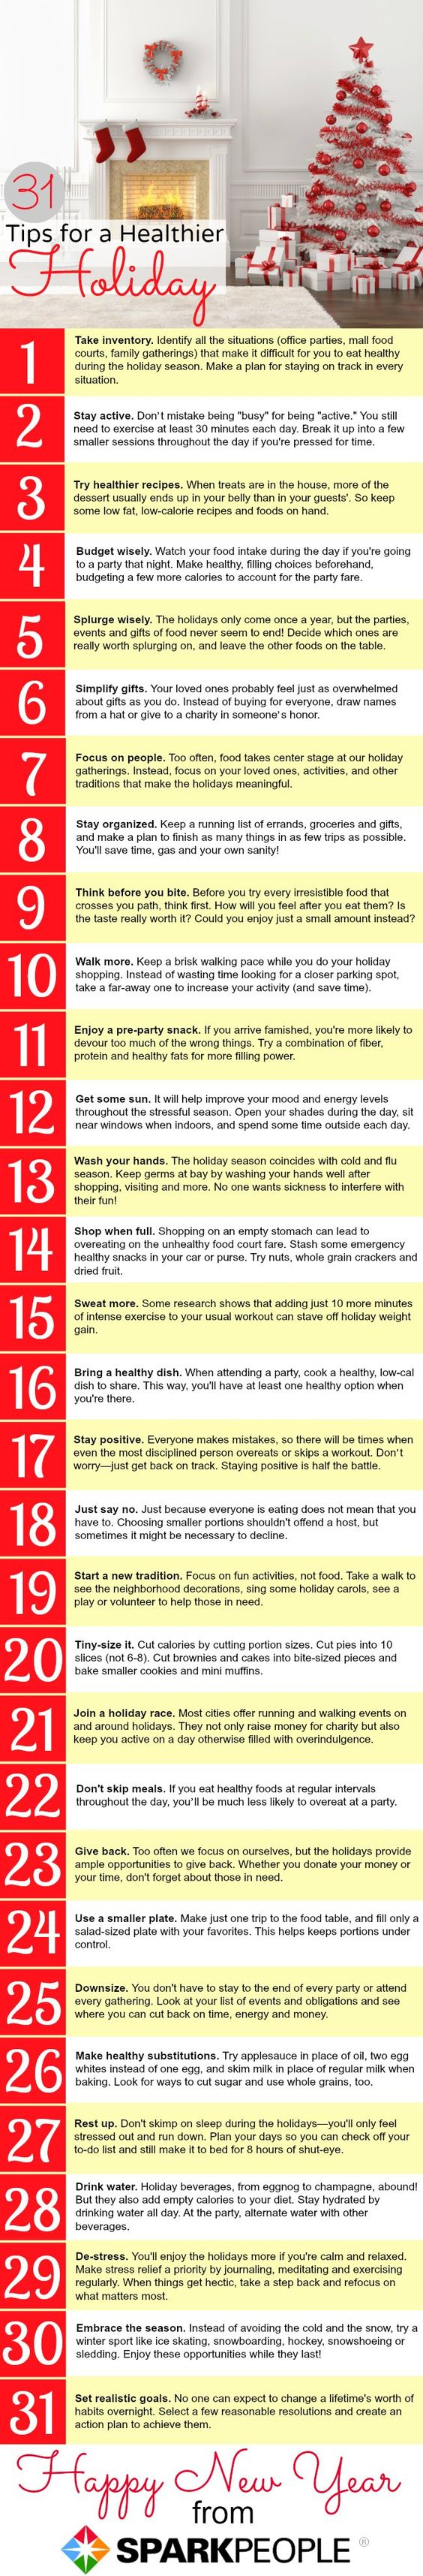 How to Keep in Shape this Christmas Season